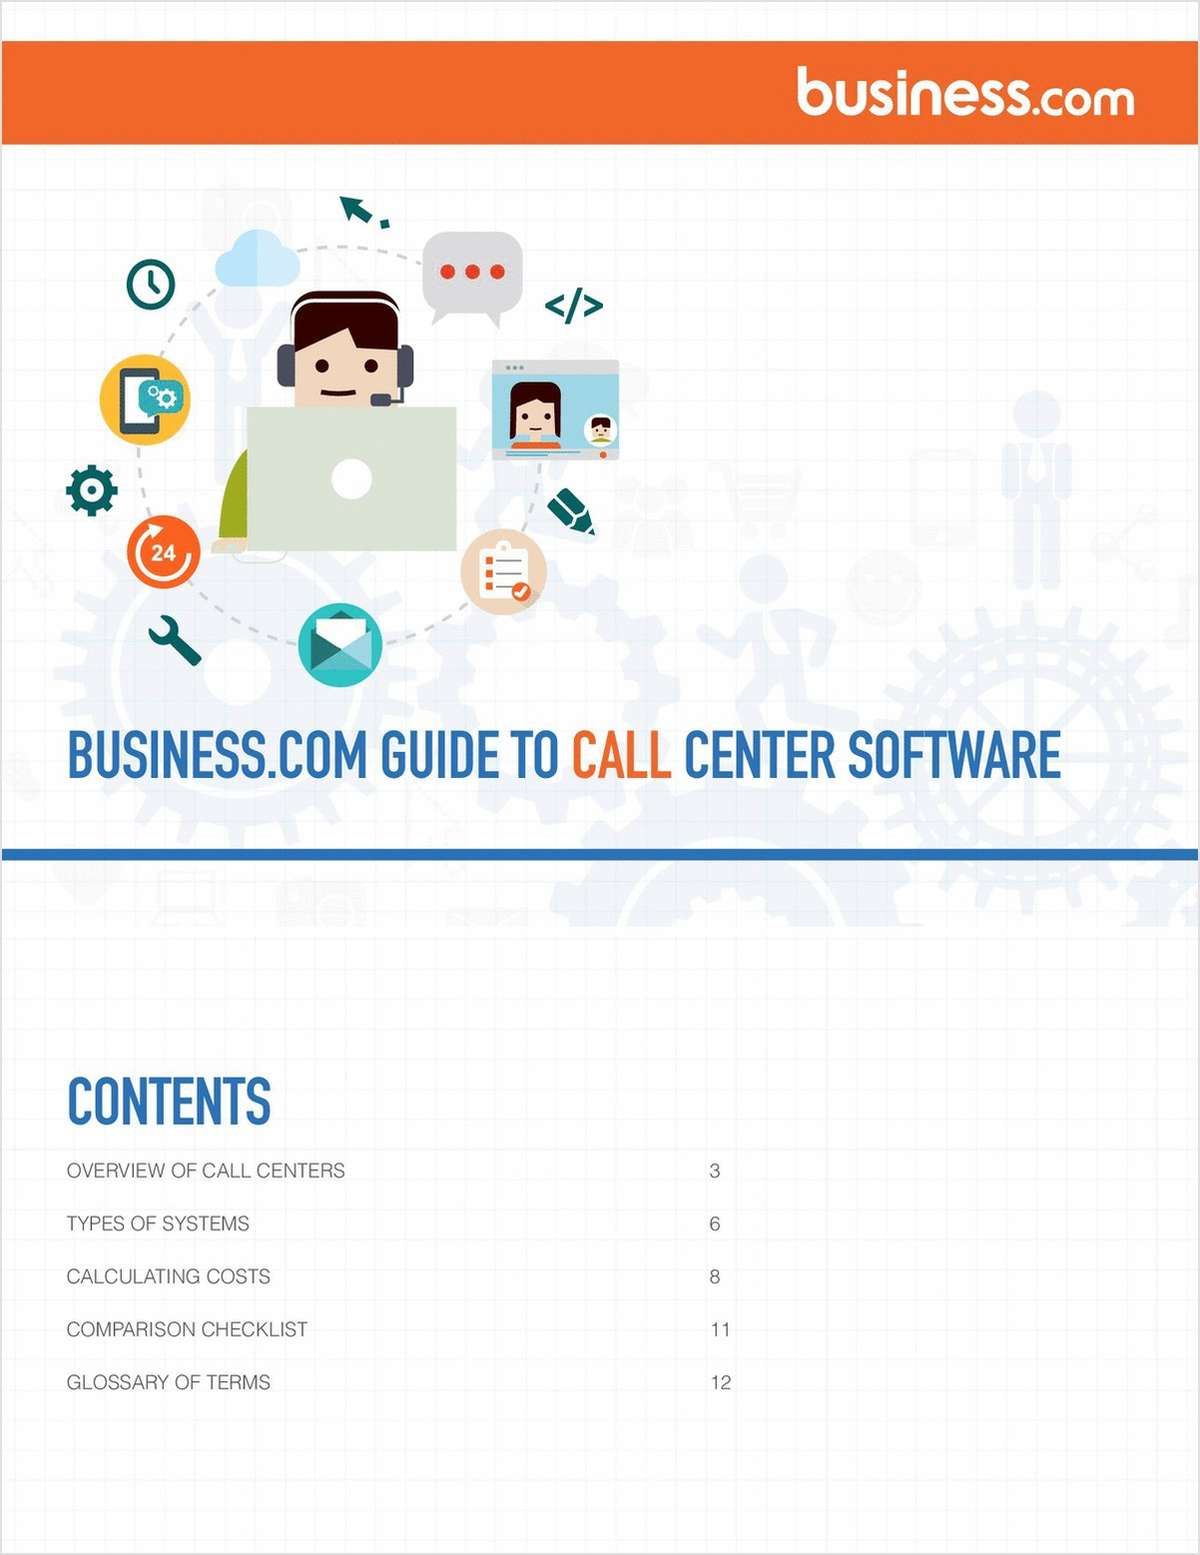 How New Software Can Increase Your Call Center's Efficiency and Productivity